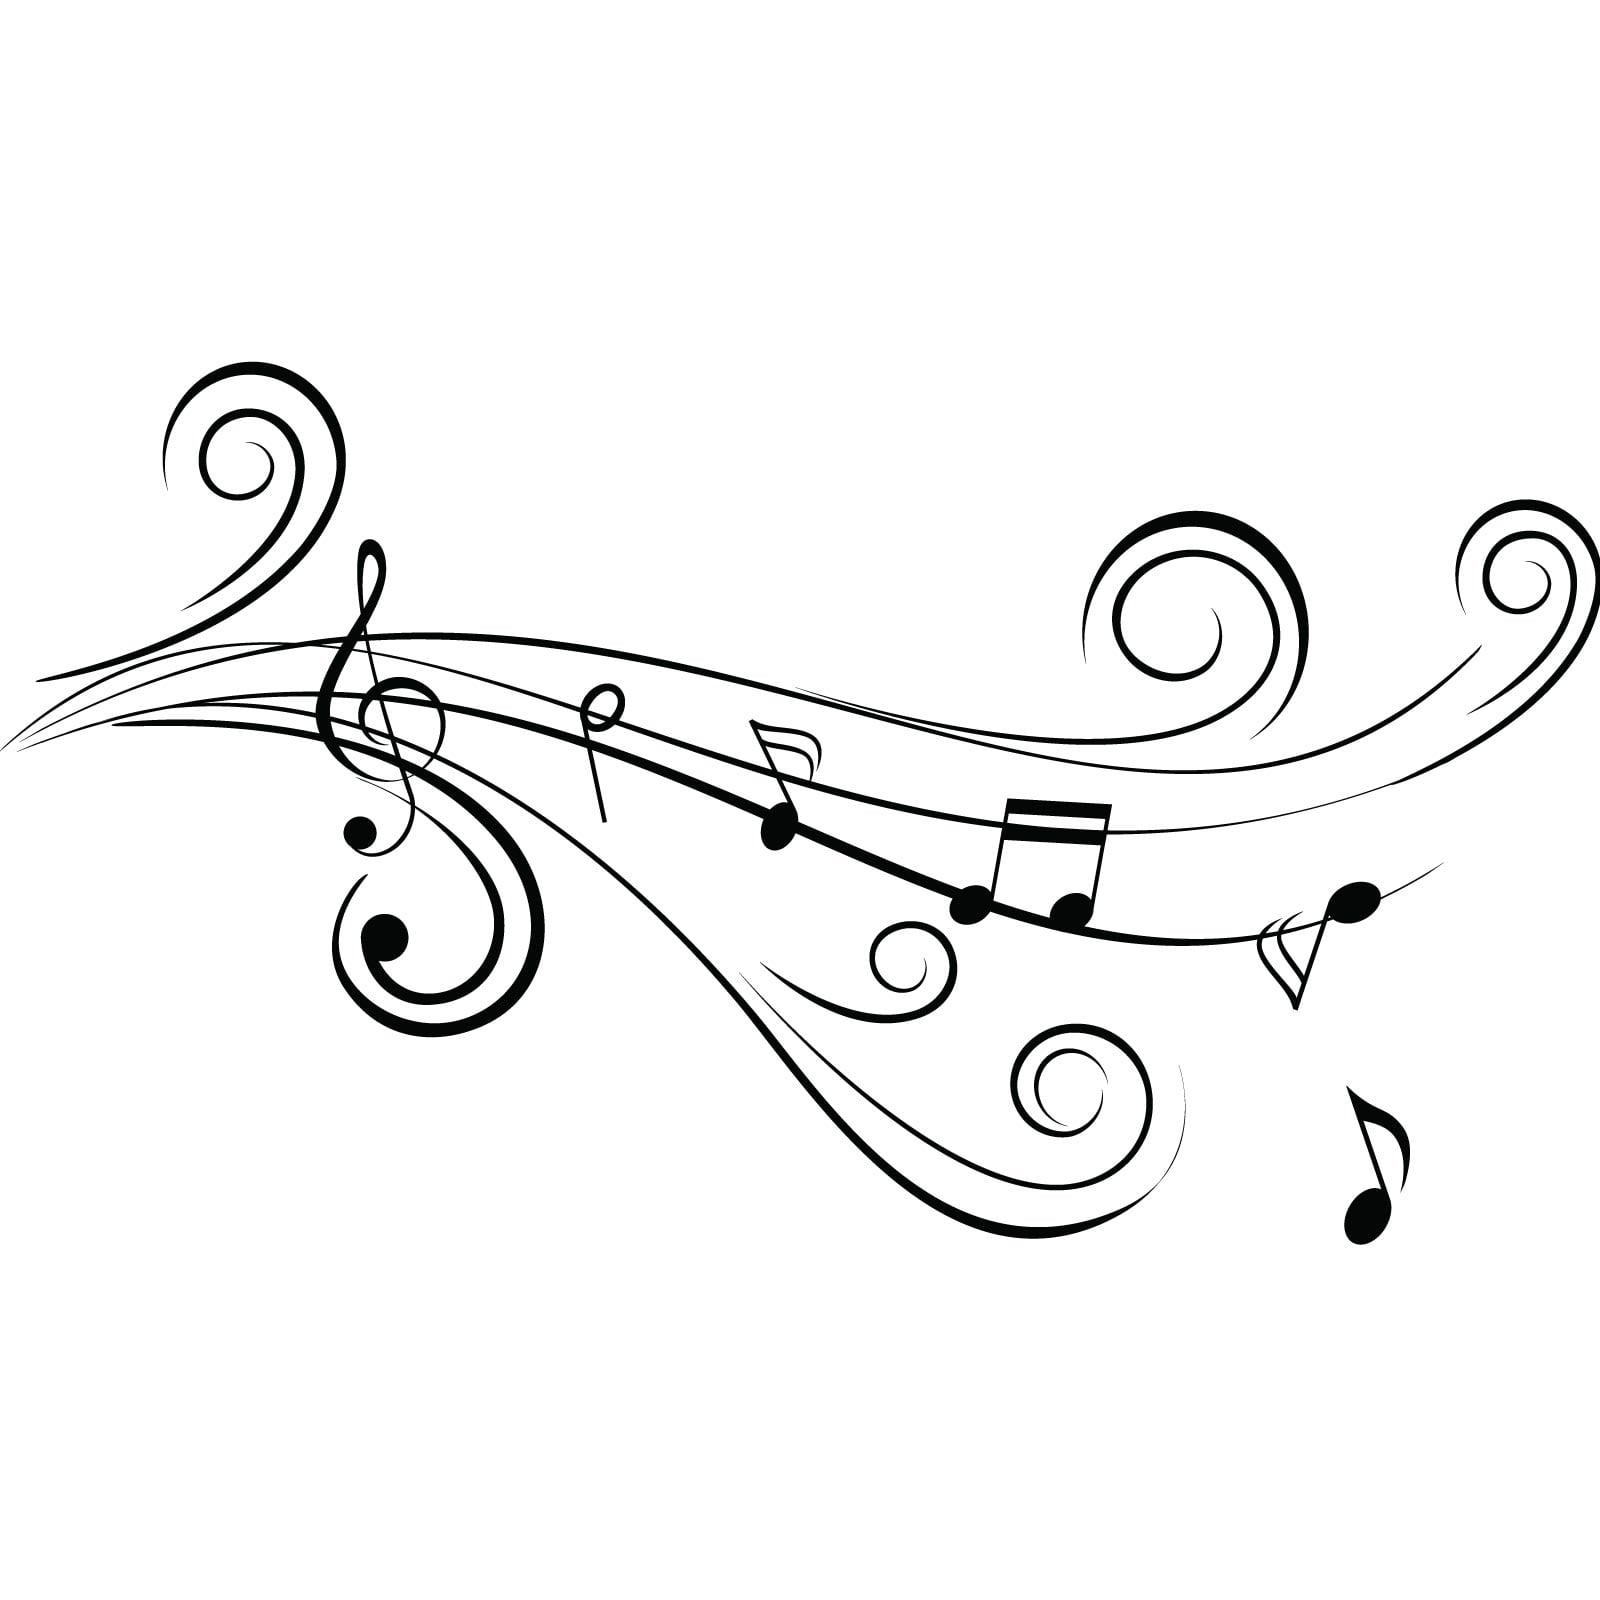 Cool Musical Notes v1 Wall Sticker